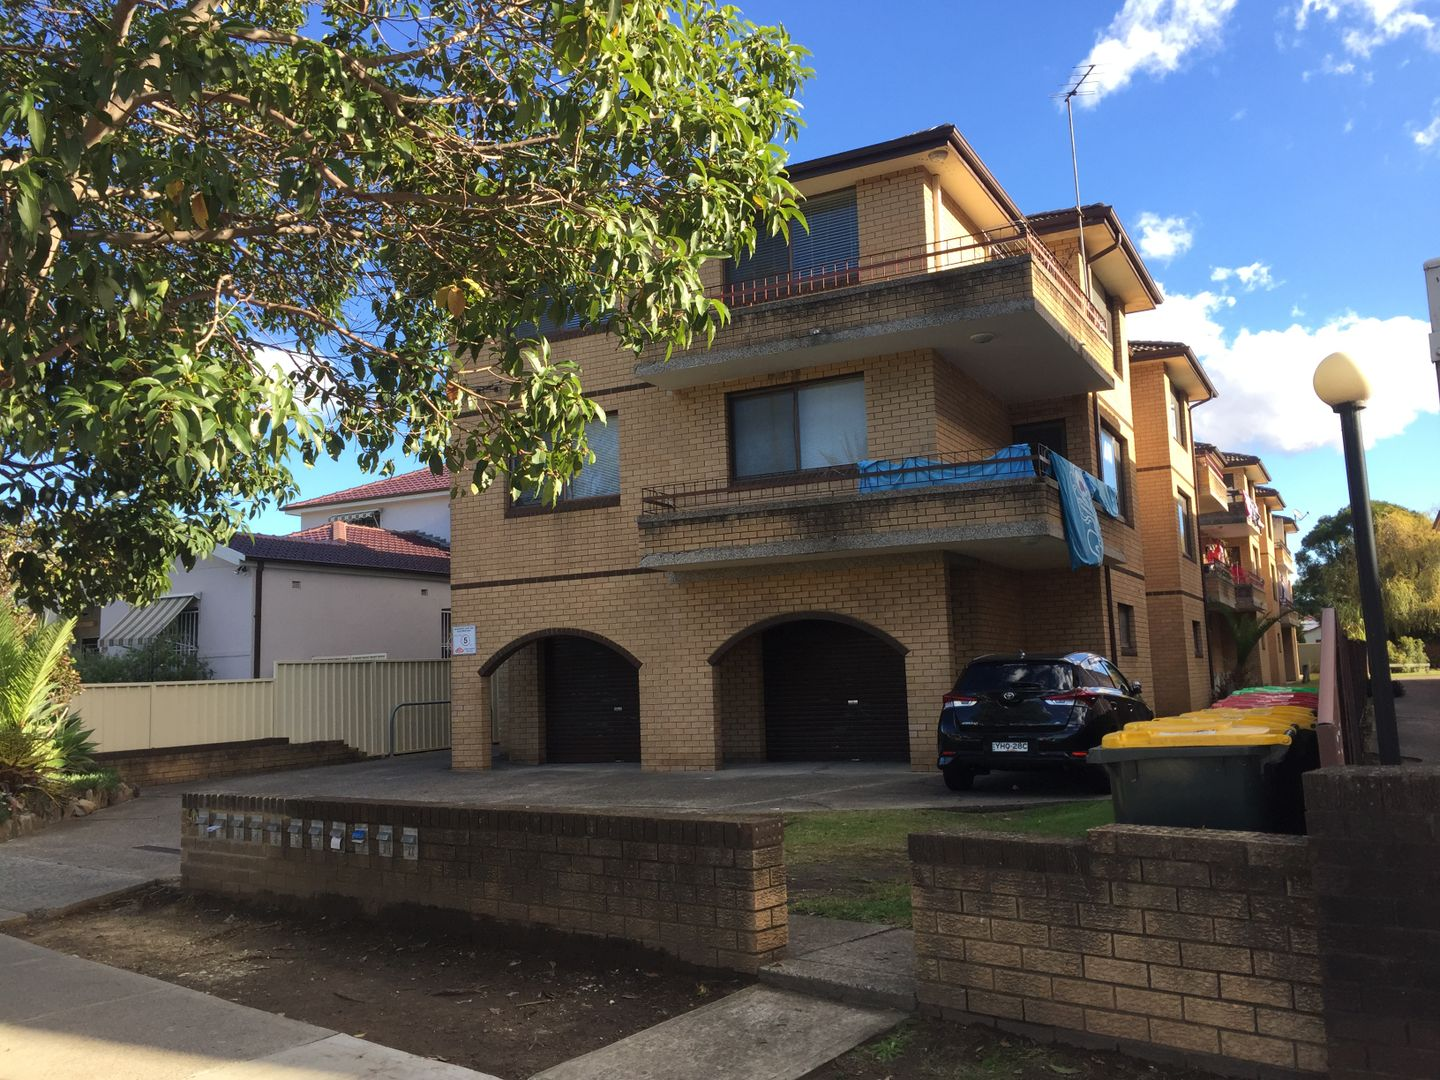 9/50 Beamish St, Campsie NSW 2194, Image 0